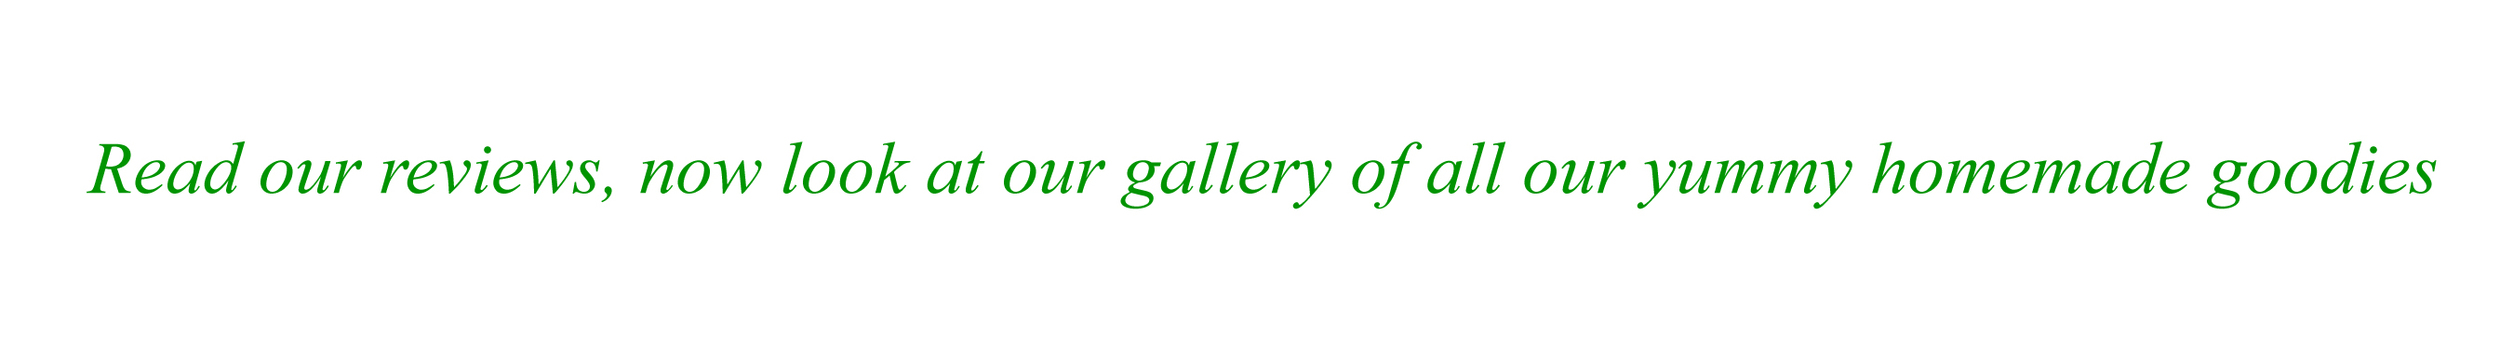 gallery-quote.jpg